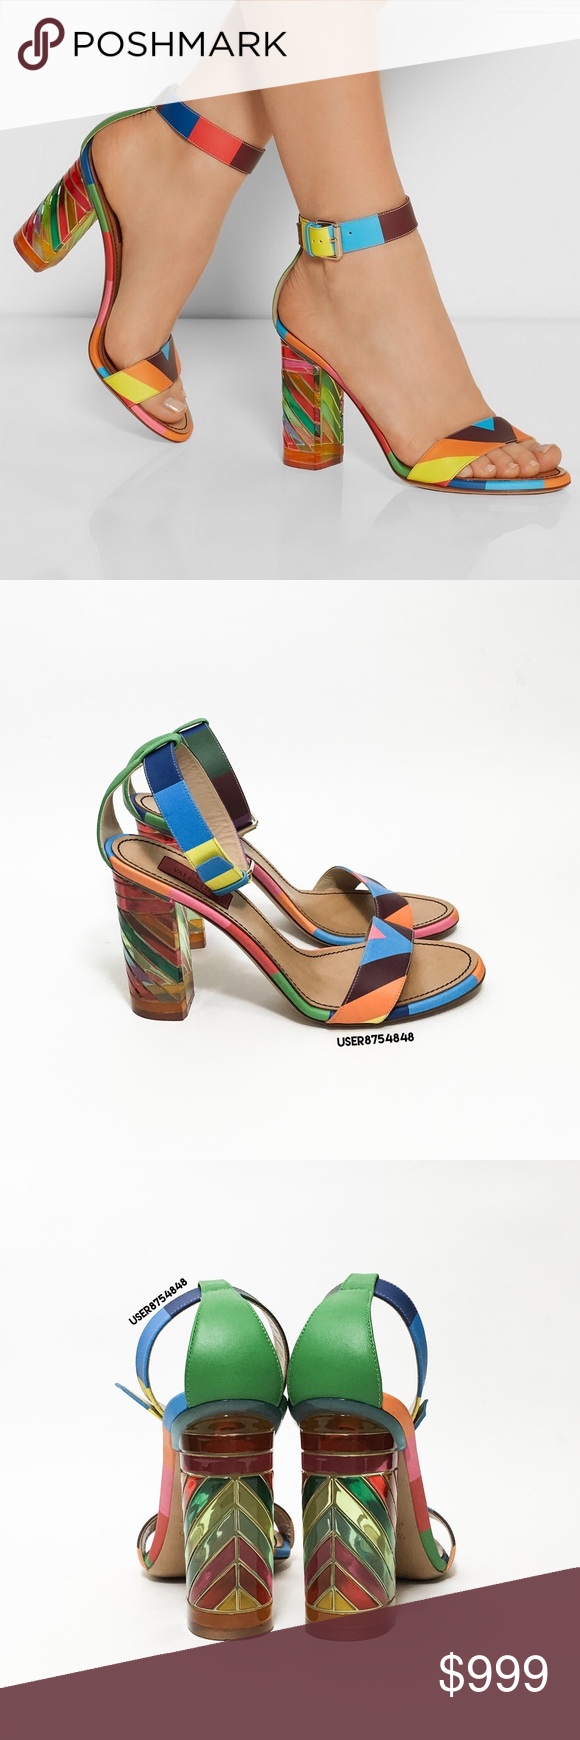 8ce7e8baff4a Valentino Rainbow Acrylic Block Heel Sandal NO TRADES Add a color to your  step with these prismatic rainbow block sandals by Valentino.